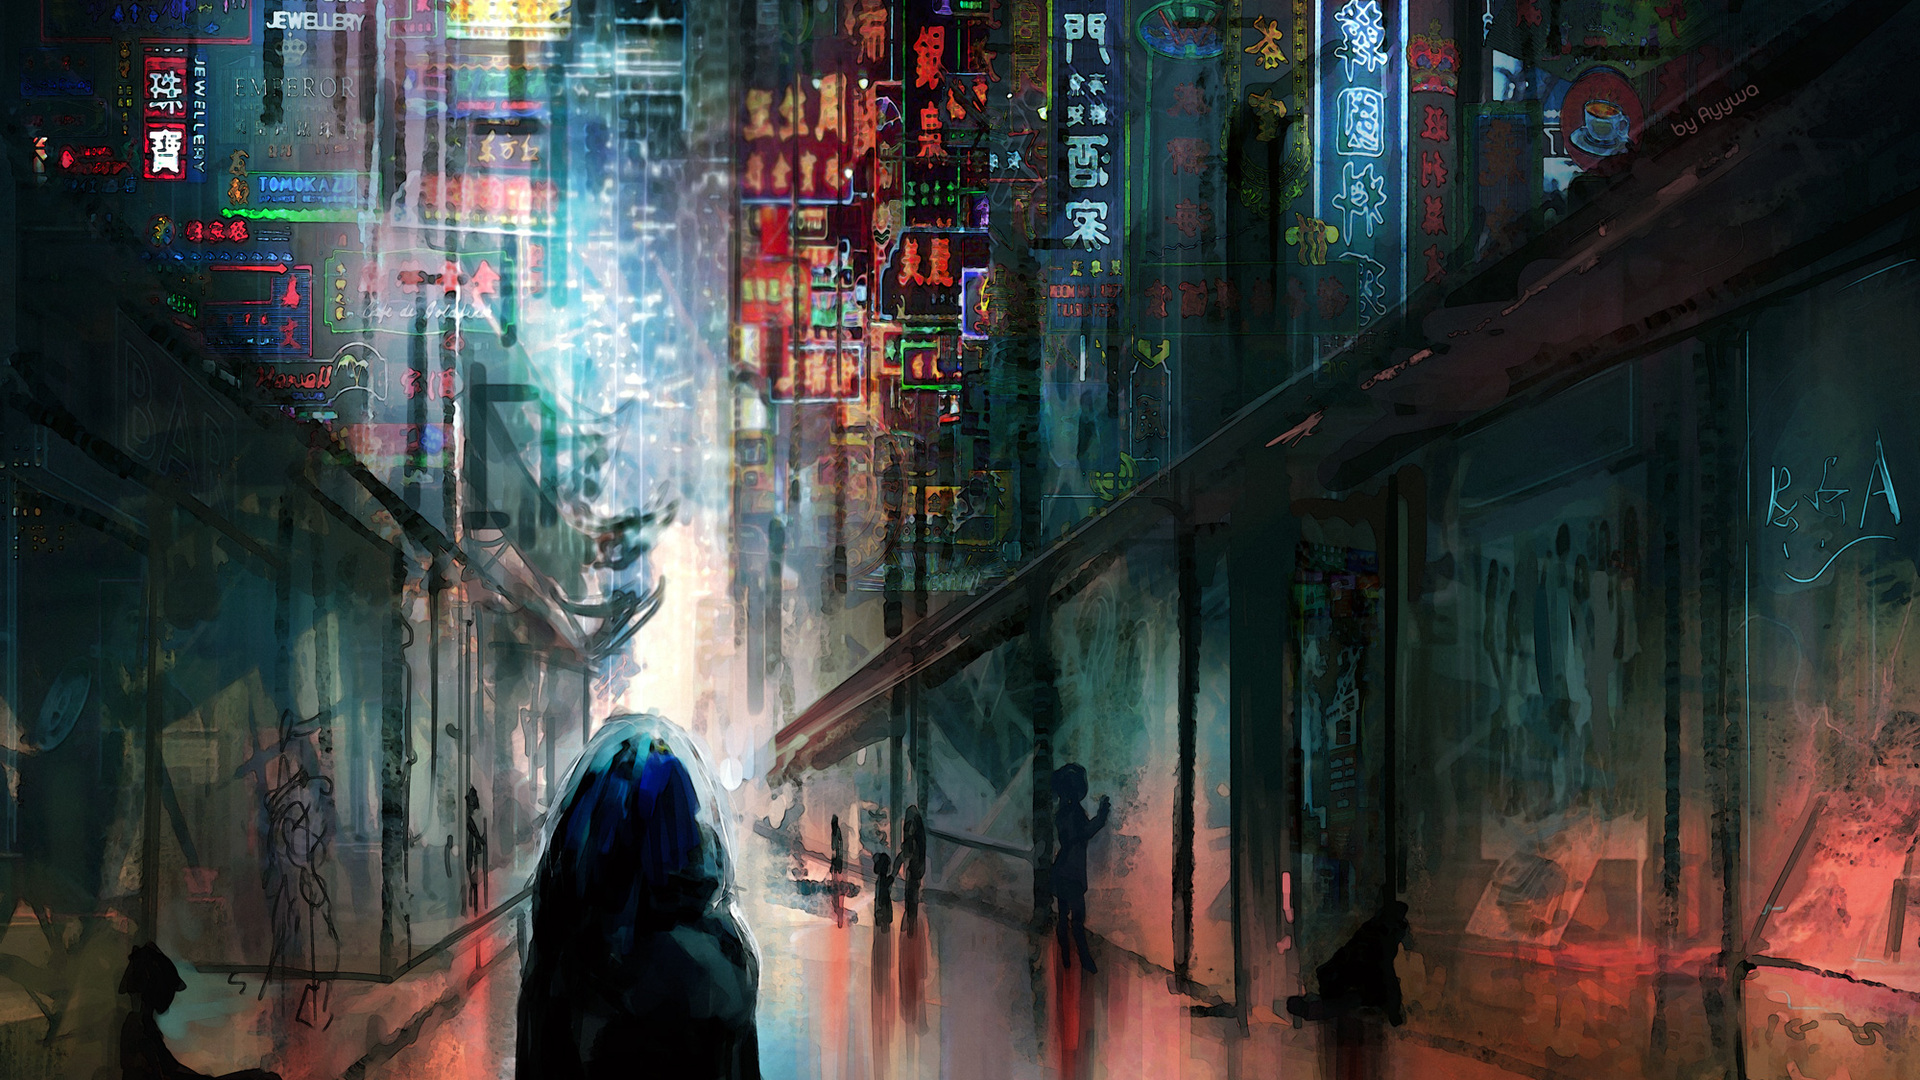 Indian Girl Wallpapers For Desktop Sketch 1920x1080 Anime Cyberpunk Scifi City Lights Night